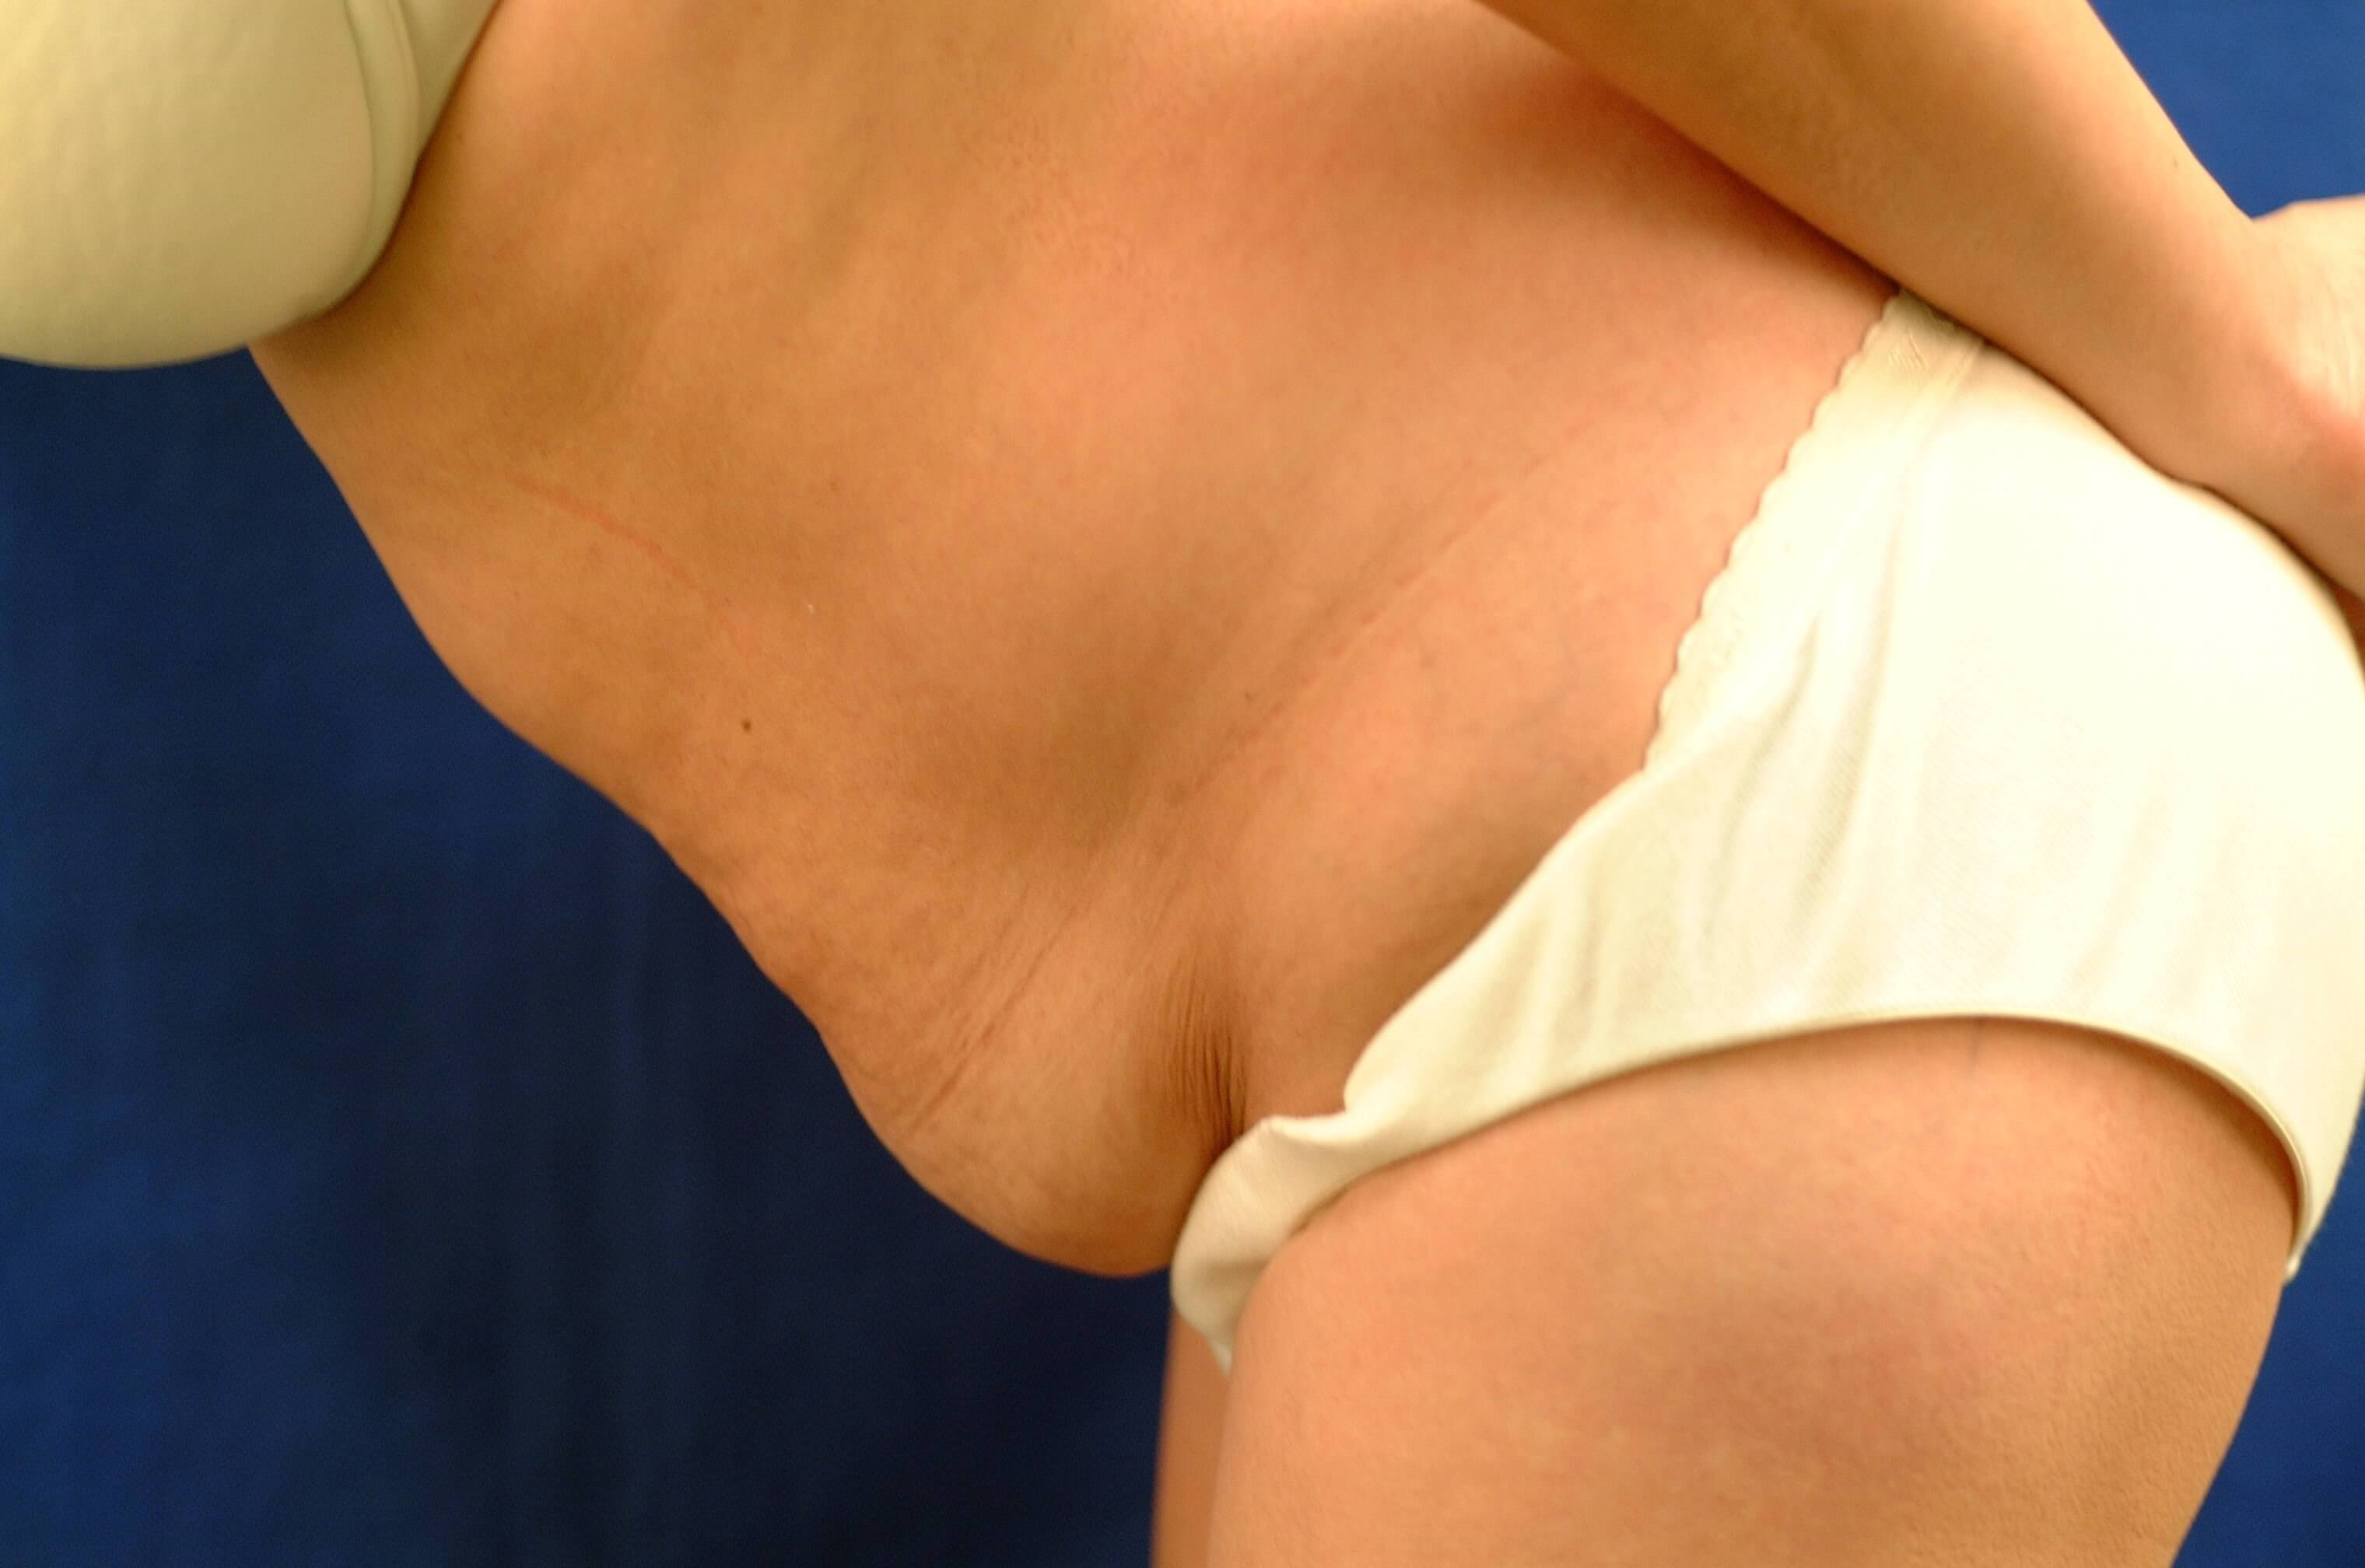 Newport Beach Liposuction Before Side View Flexing